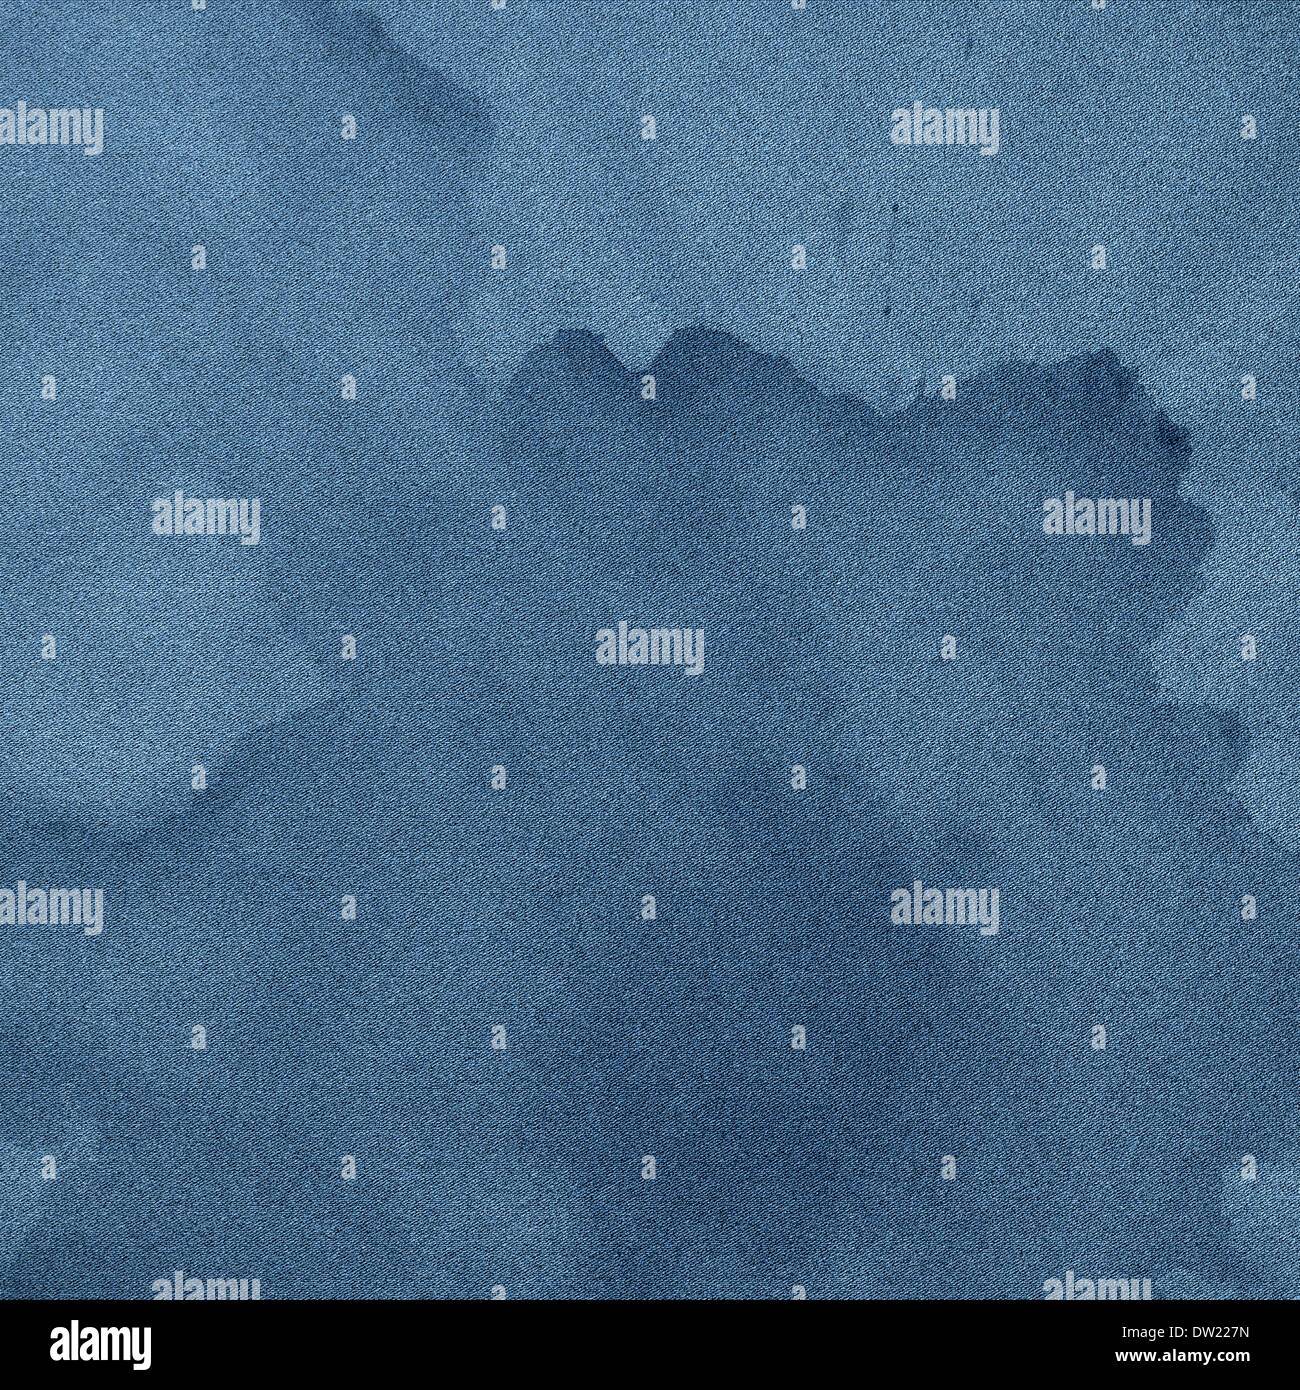 denim background - Stock Image